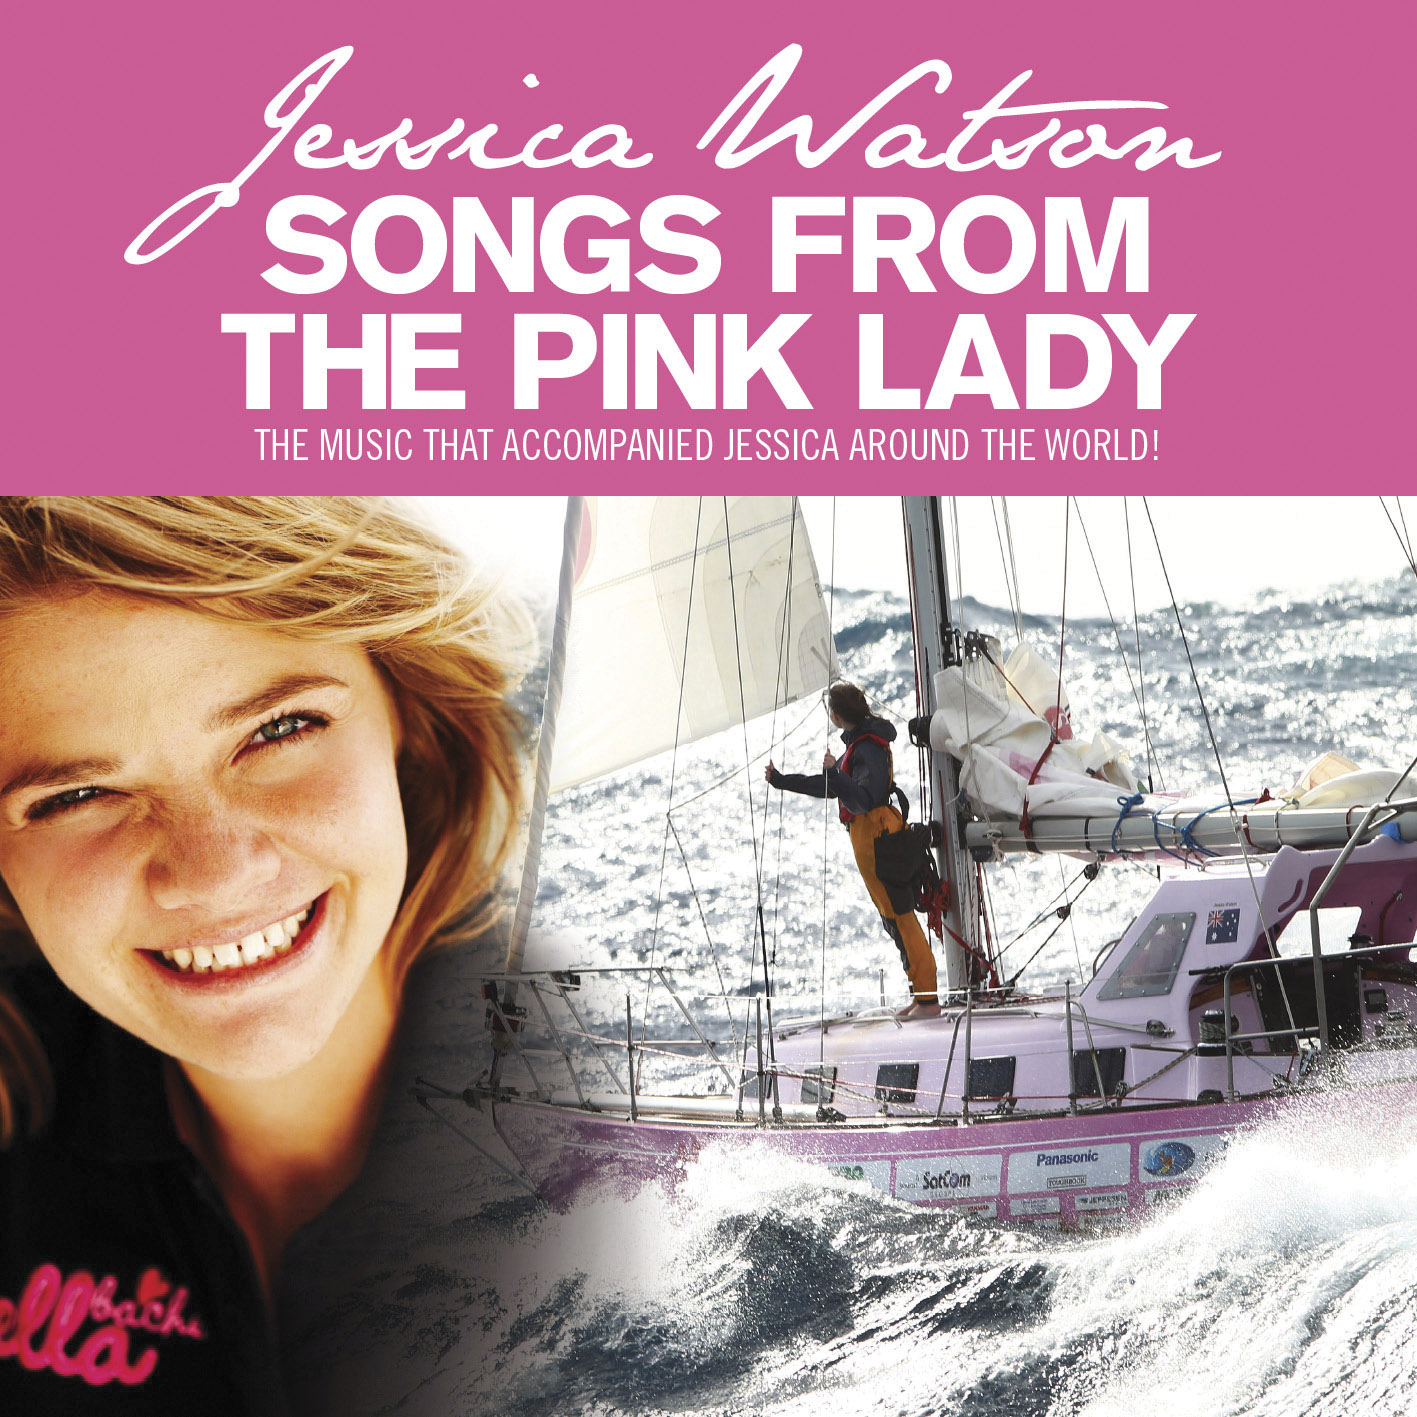 Teen solo sailor Jessica